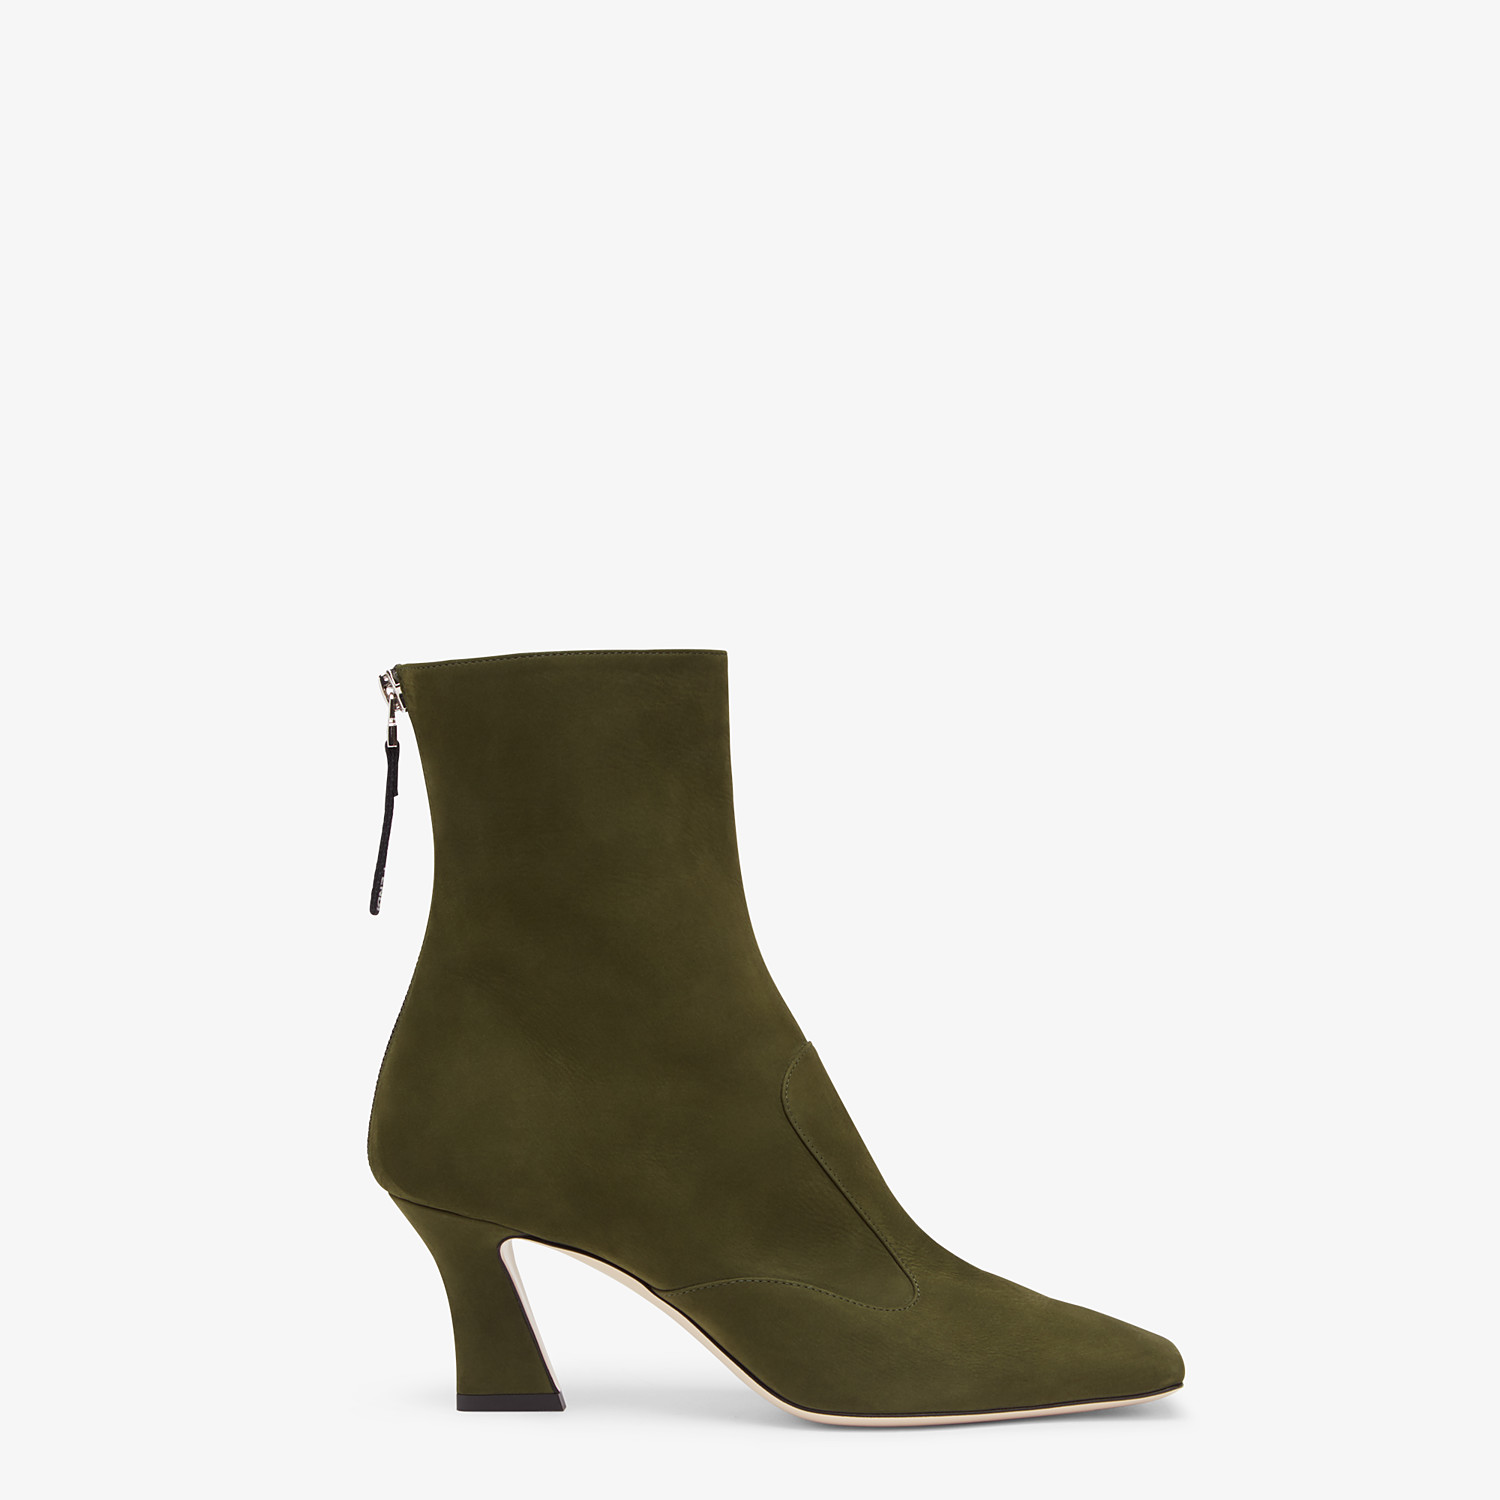 FENDI ANKLE BOOTS - Booties in green nubuck leather - view 1 detail